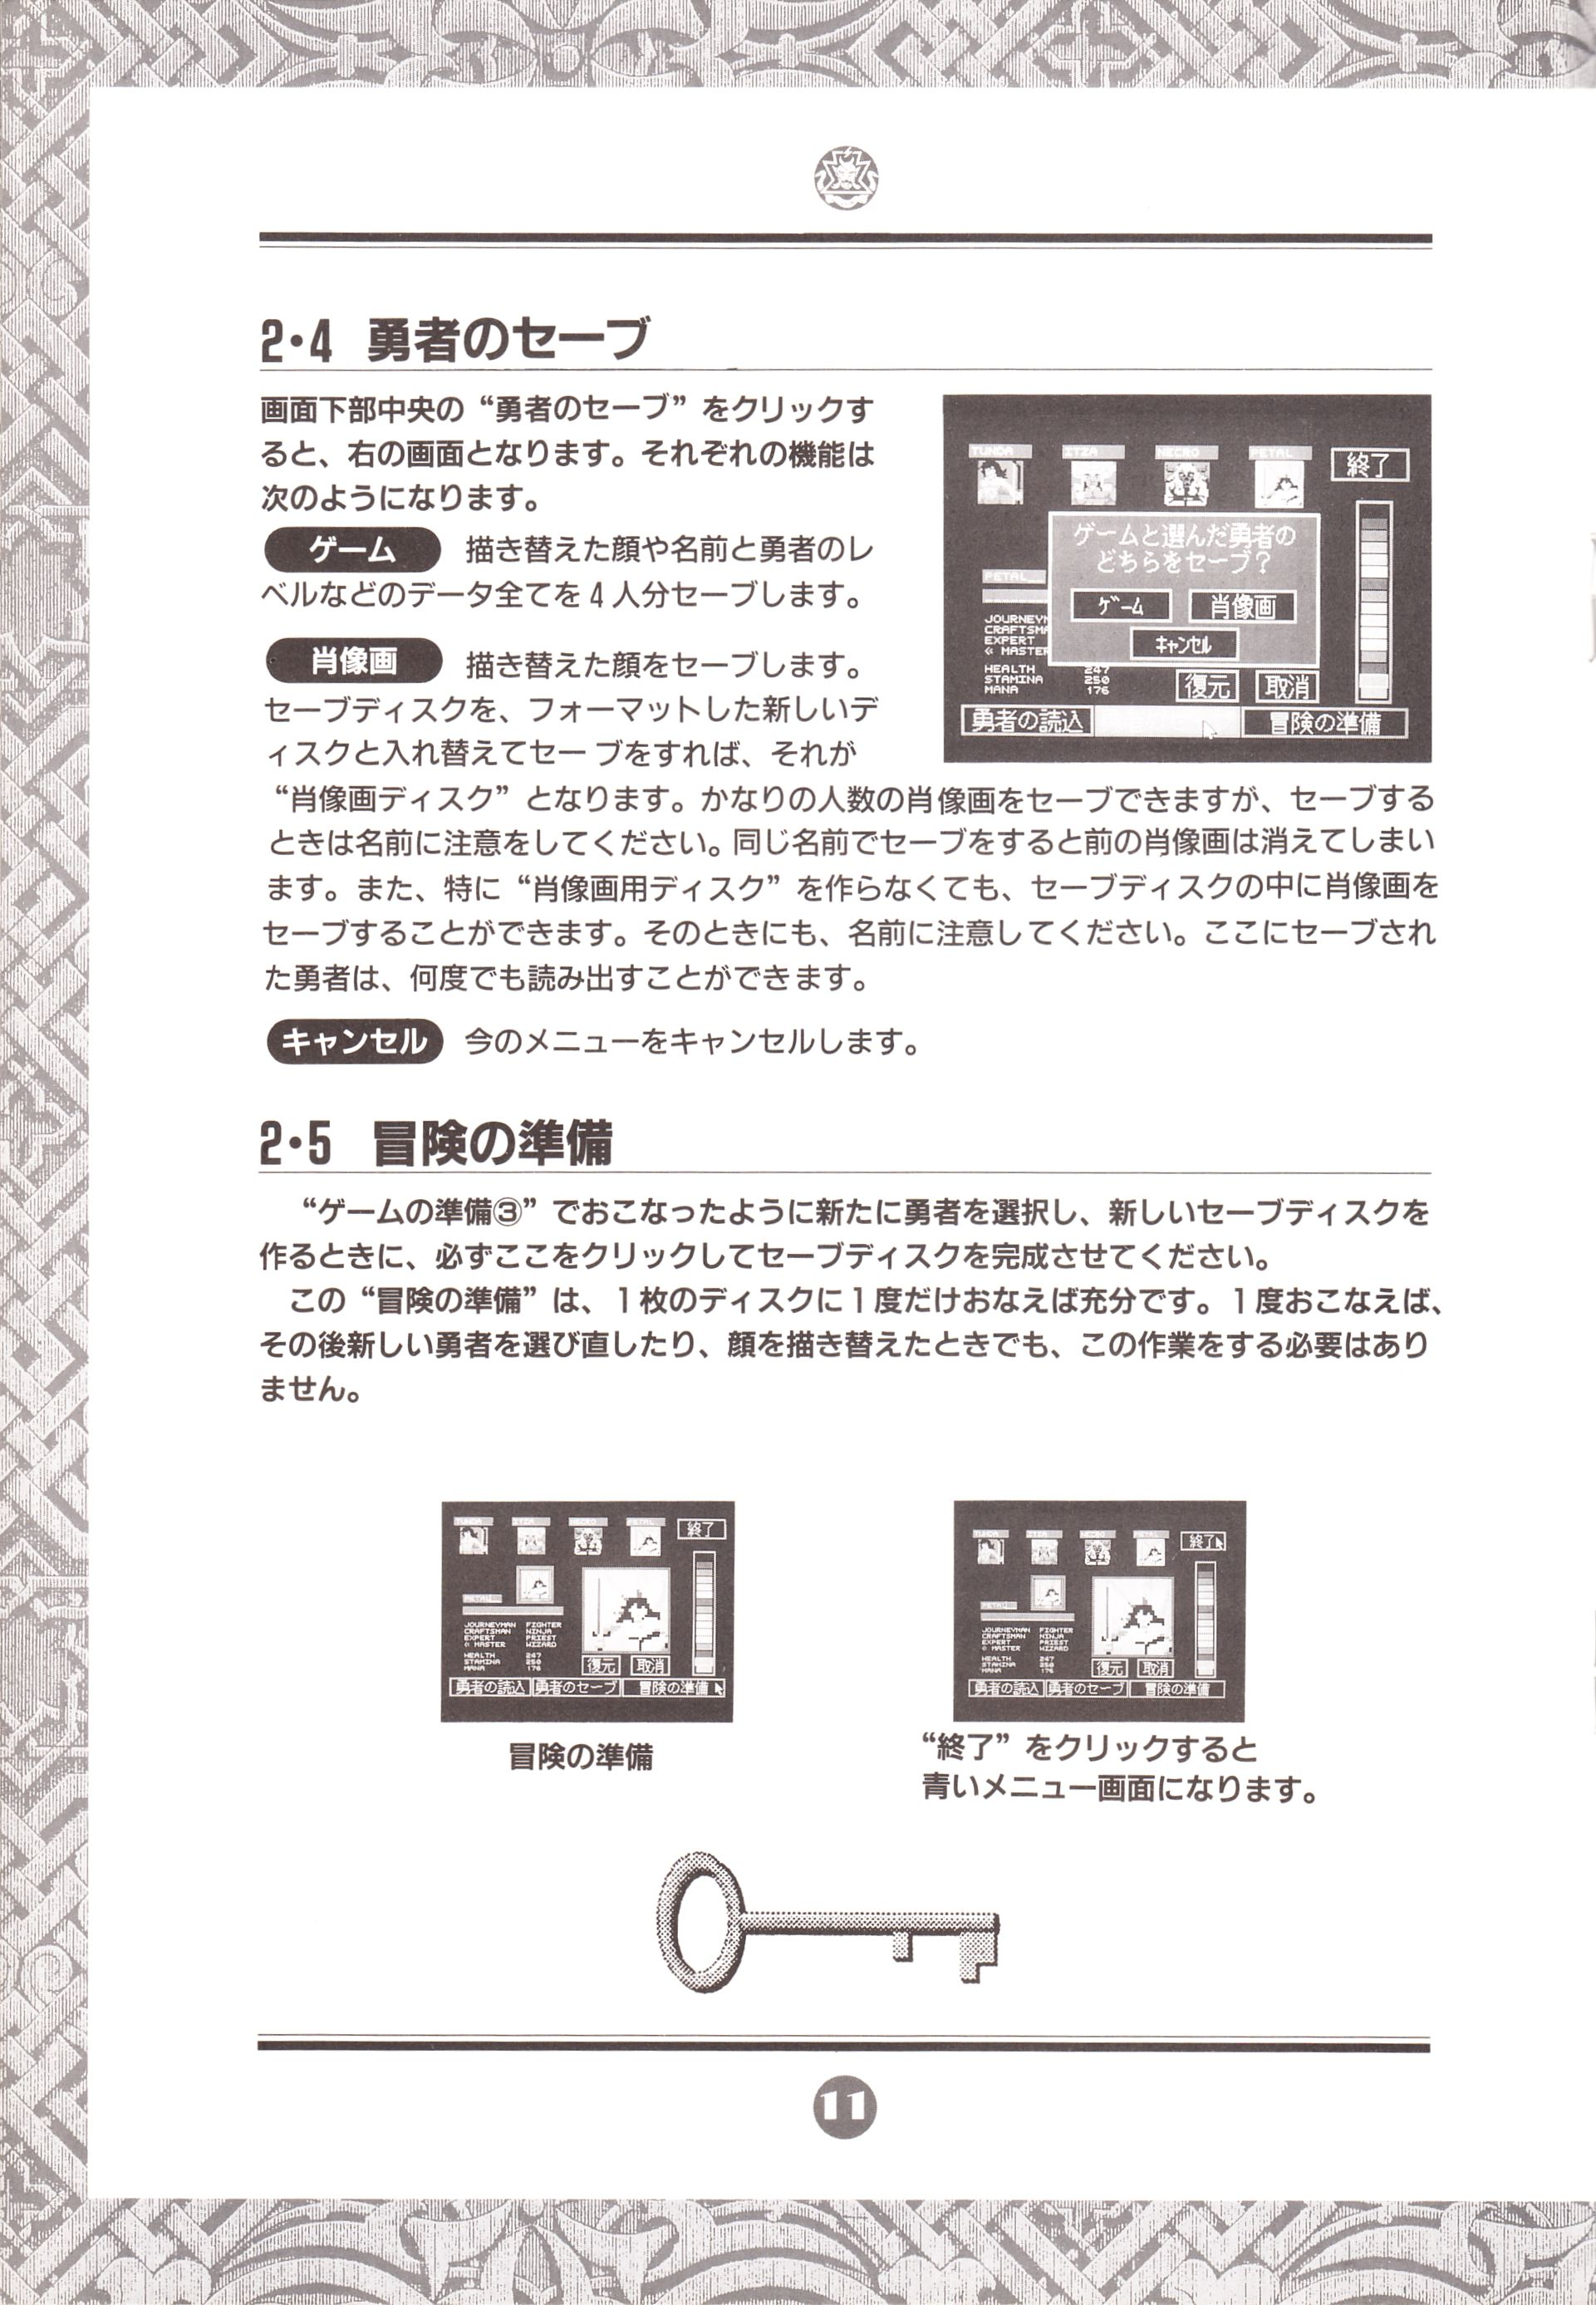 Game - Chaos Strikes Back - JP - PC-9801 - 3-5-inch - An Operation Manual - Page 014 - Scan